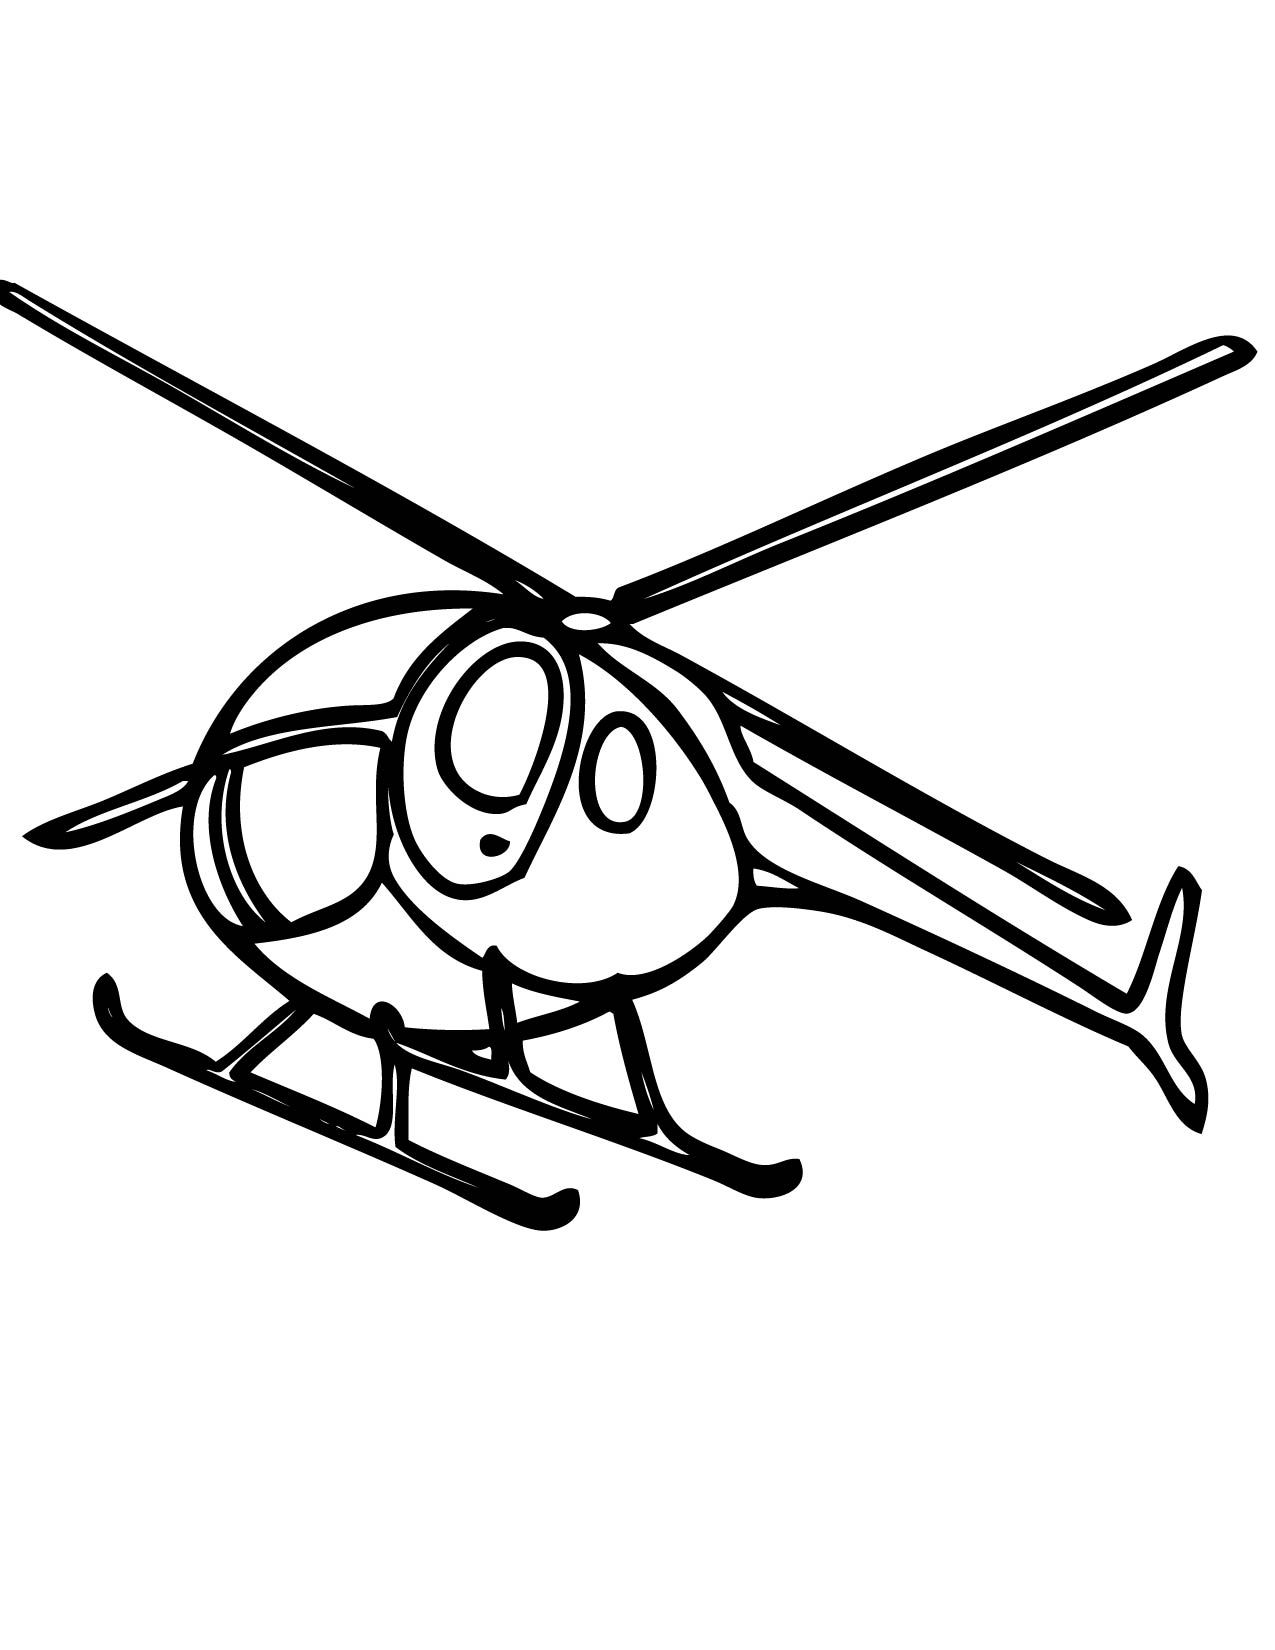 87 Coloring Page Helicopter